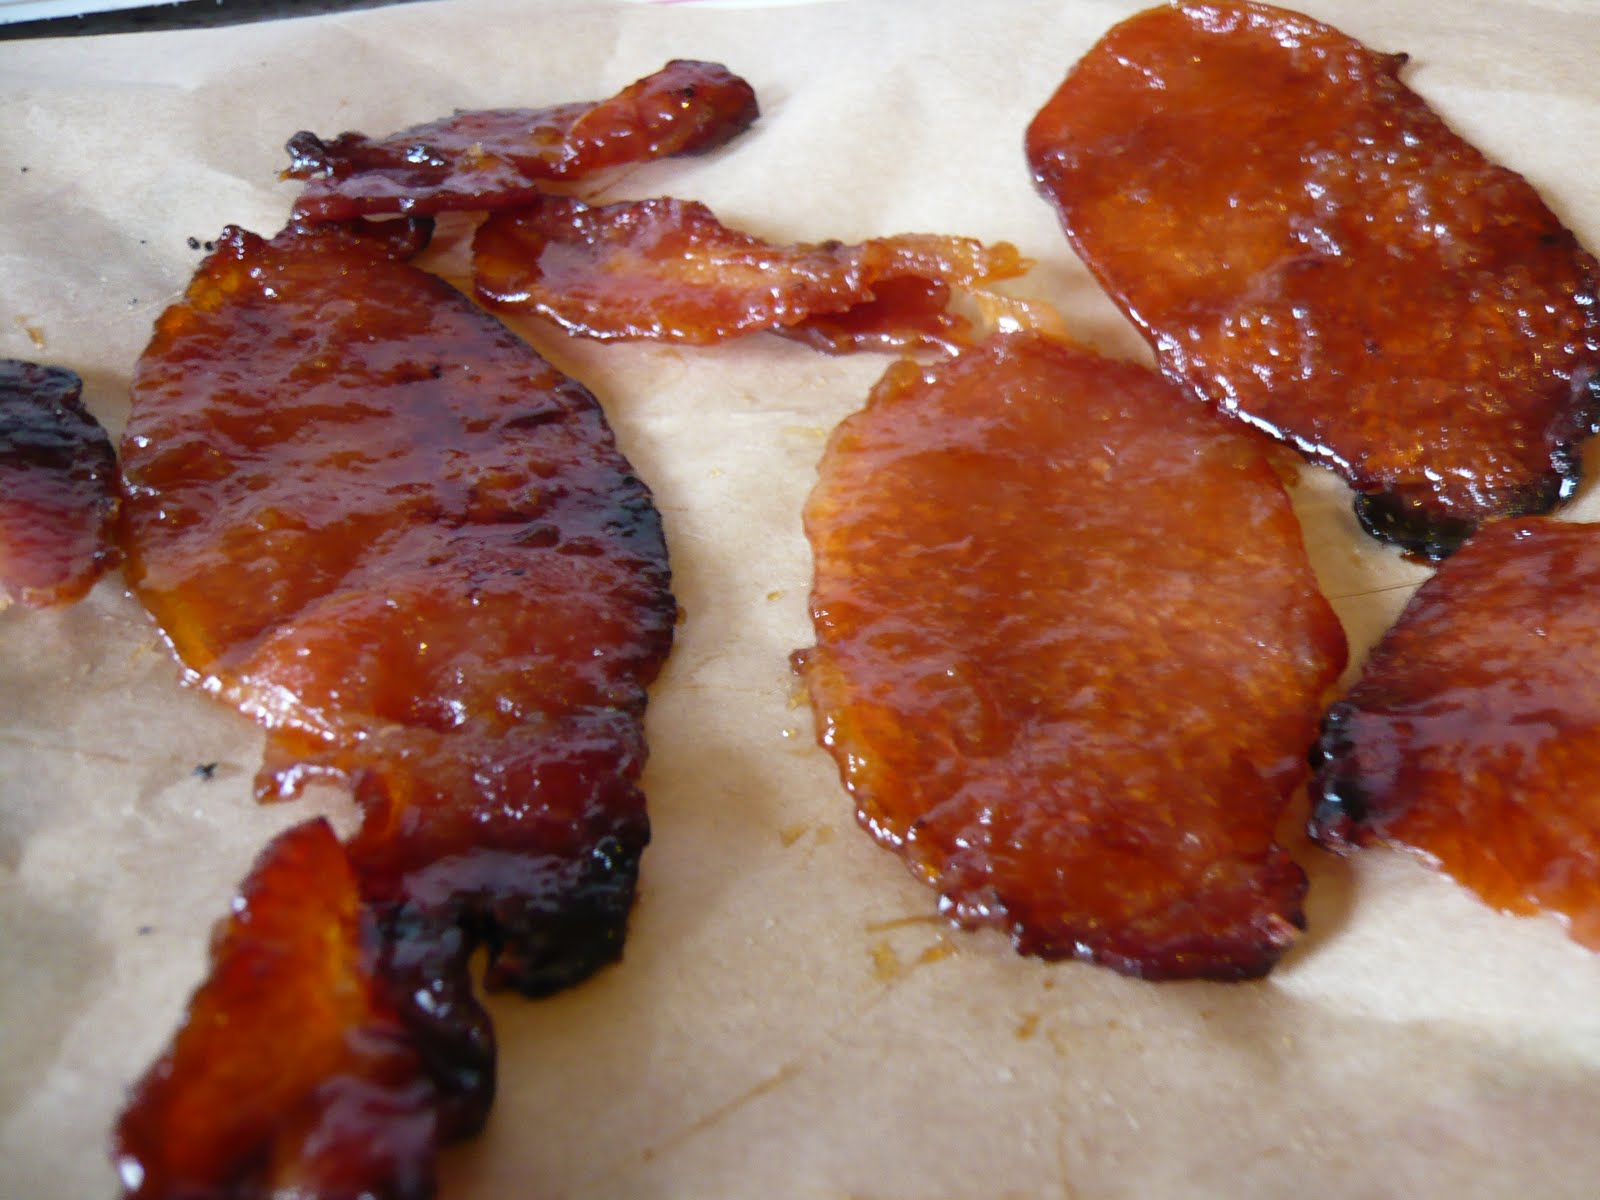 Challenge 22: Caramelized bacon and maple cookies